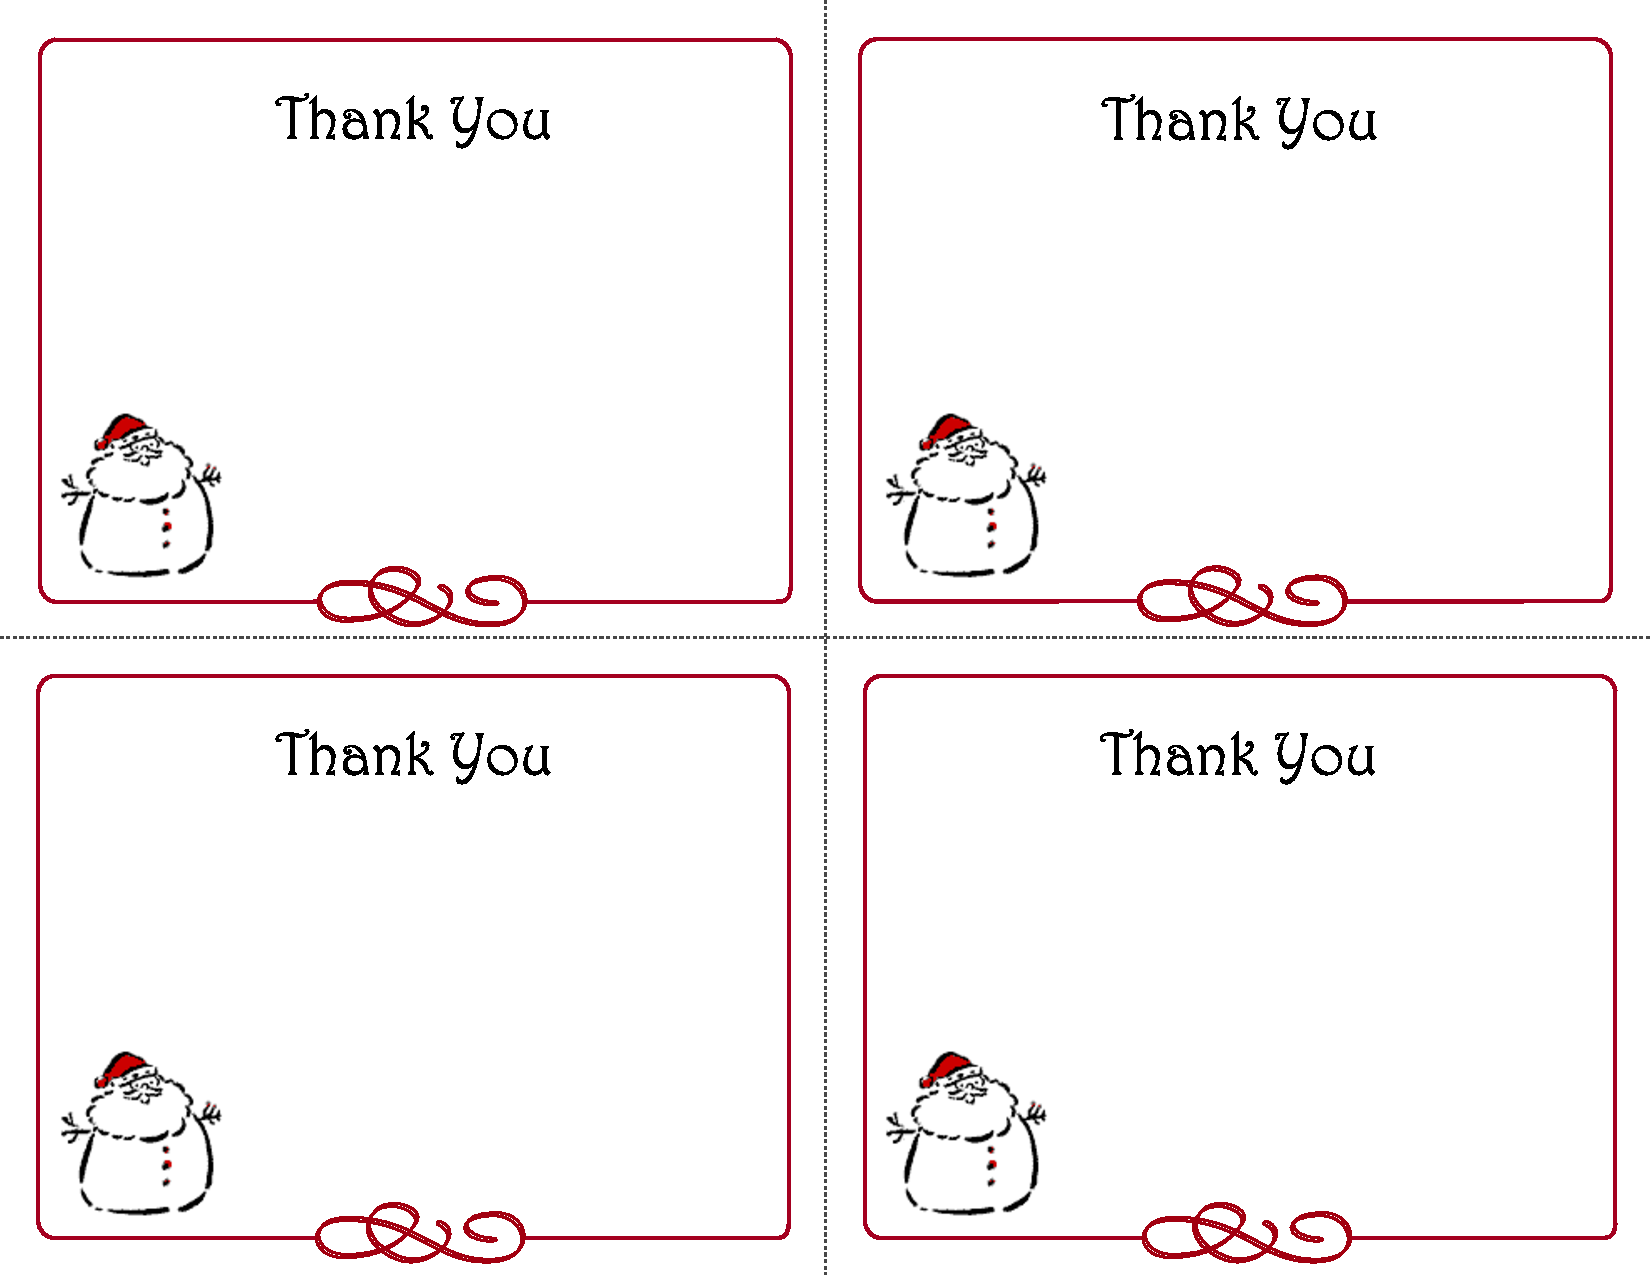 7 Images of Thank You Card Printable Templates